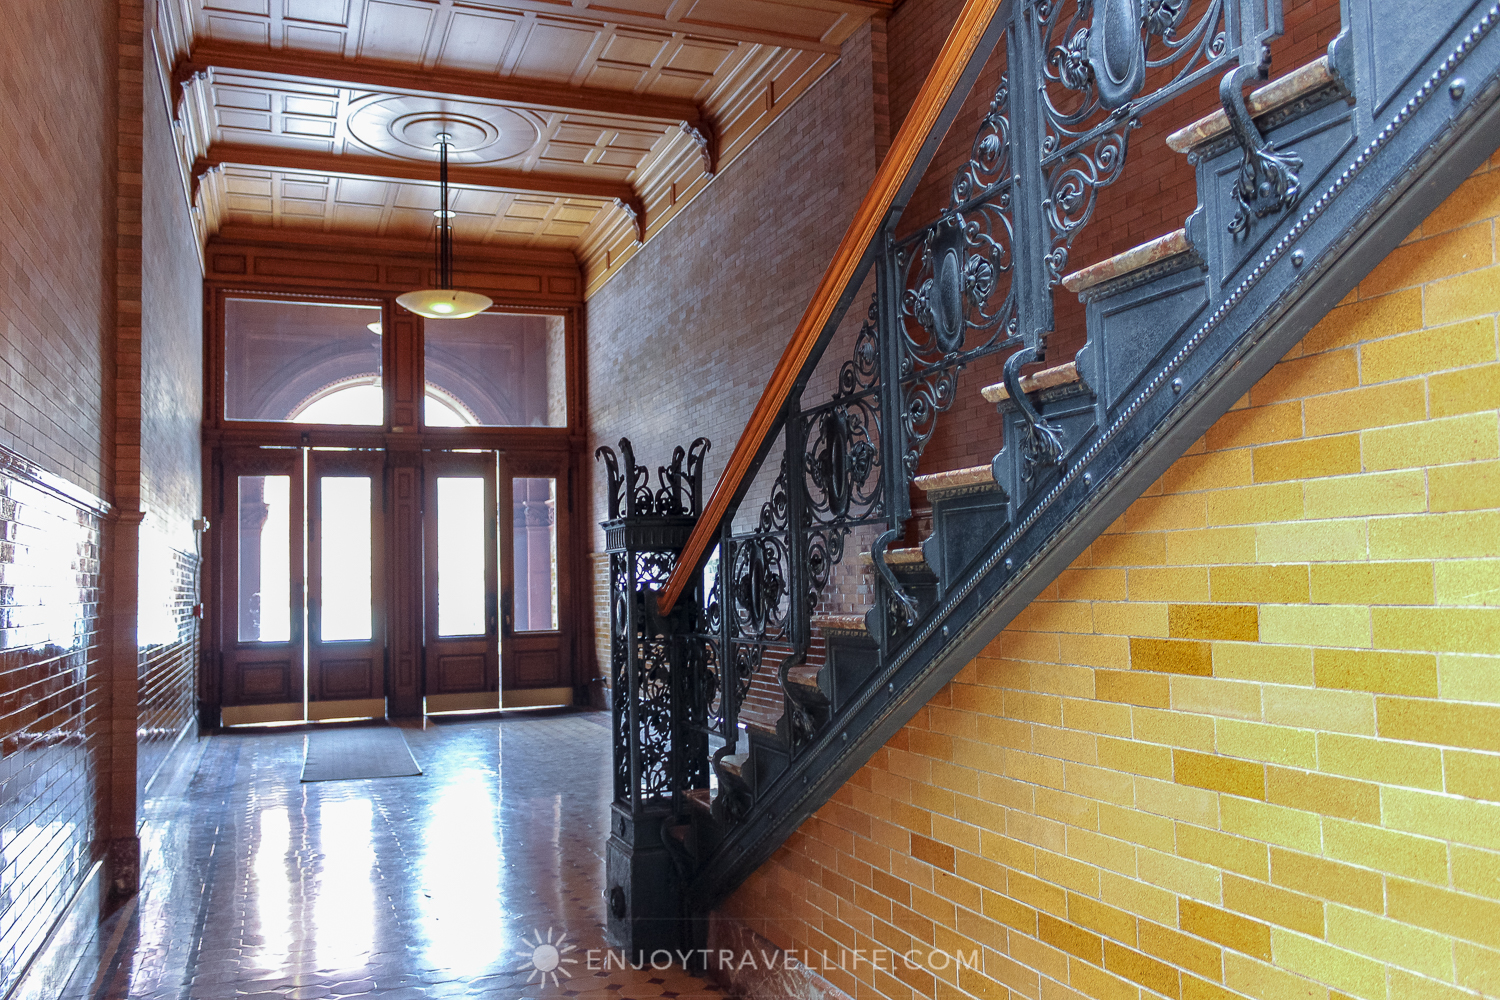 The Bradbury Building Los Angeles - exit and stairway with ironwork